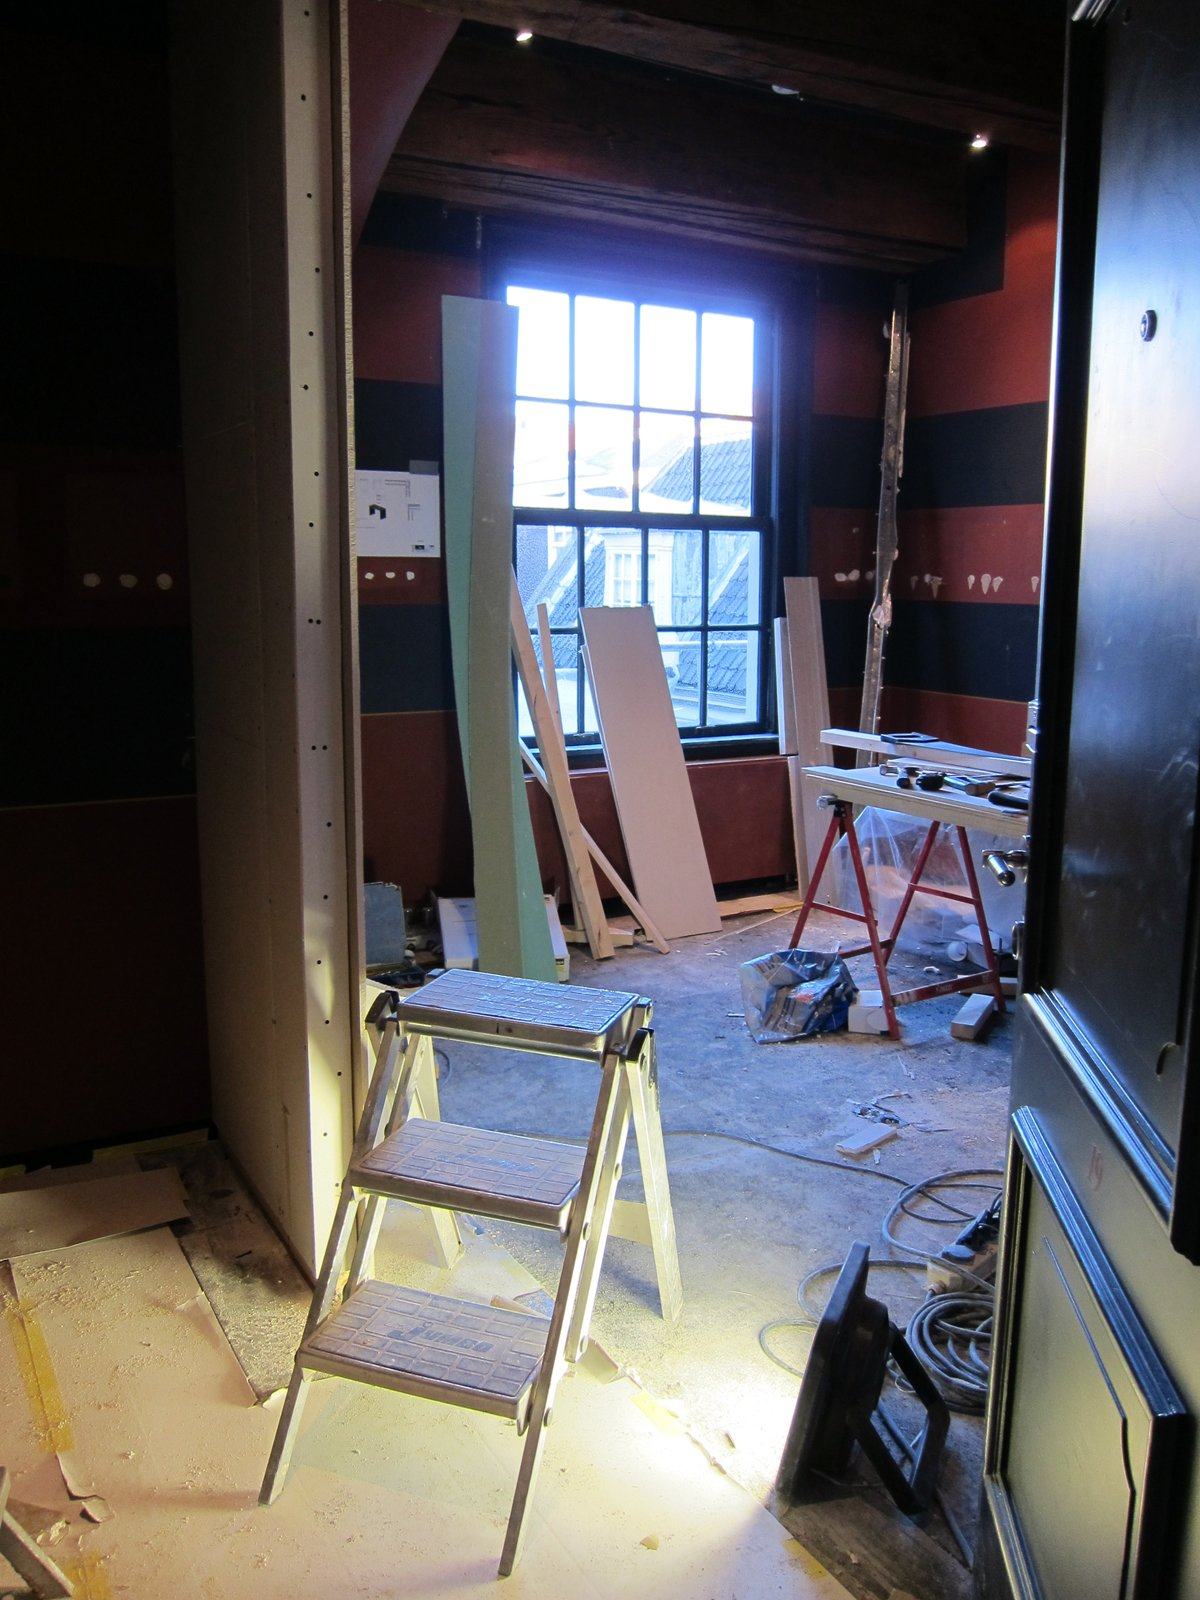 While I was staying at the hotel ten rooms were still under renovation, but I stole a peek into one of them—very much still a work in progress...  The Dylan, Amsterdam by Jaime Gillin